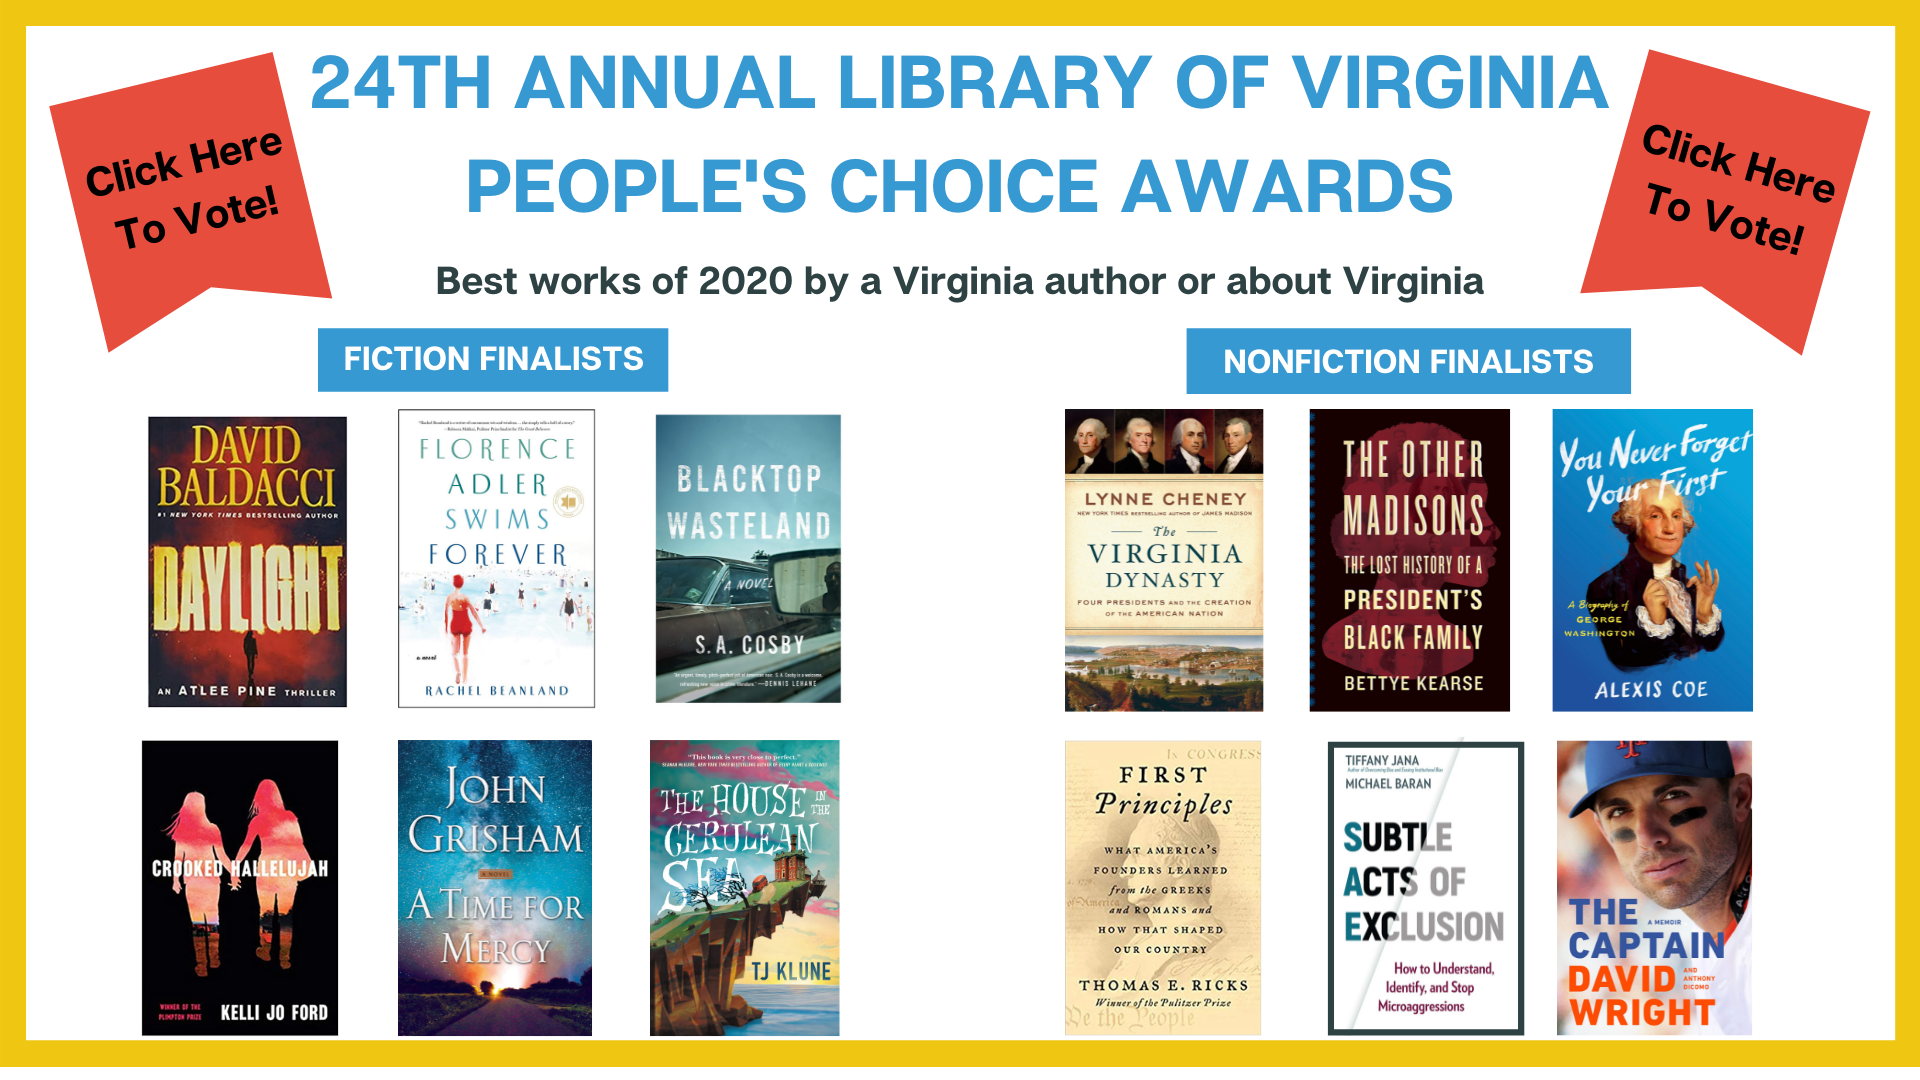 Graphic reads: twenty-fourth annual library of Virginia people's choice awards. Best works of 2020 by a Virginia author or about Virginia. There are pictures of book covers for the six Fiction finalists and six nonfiction finalists. A banner reader: Click here to vote!